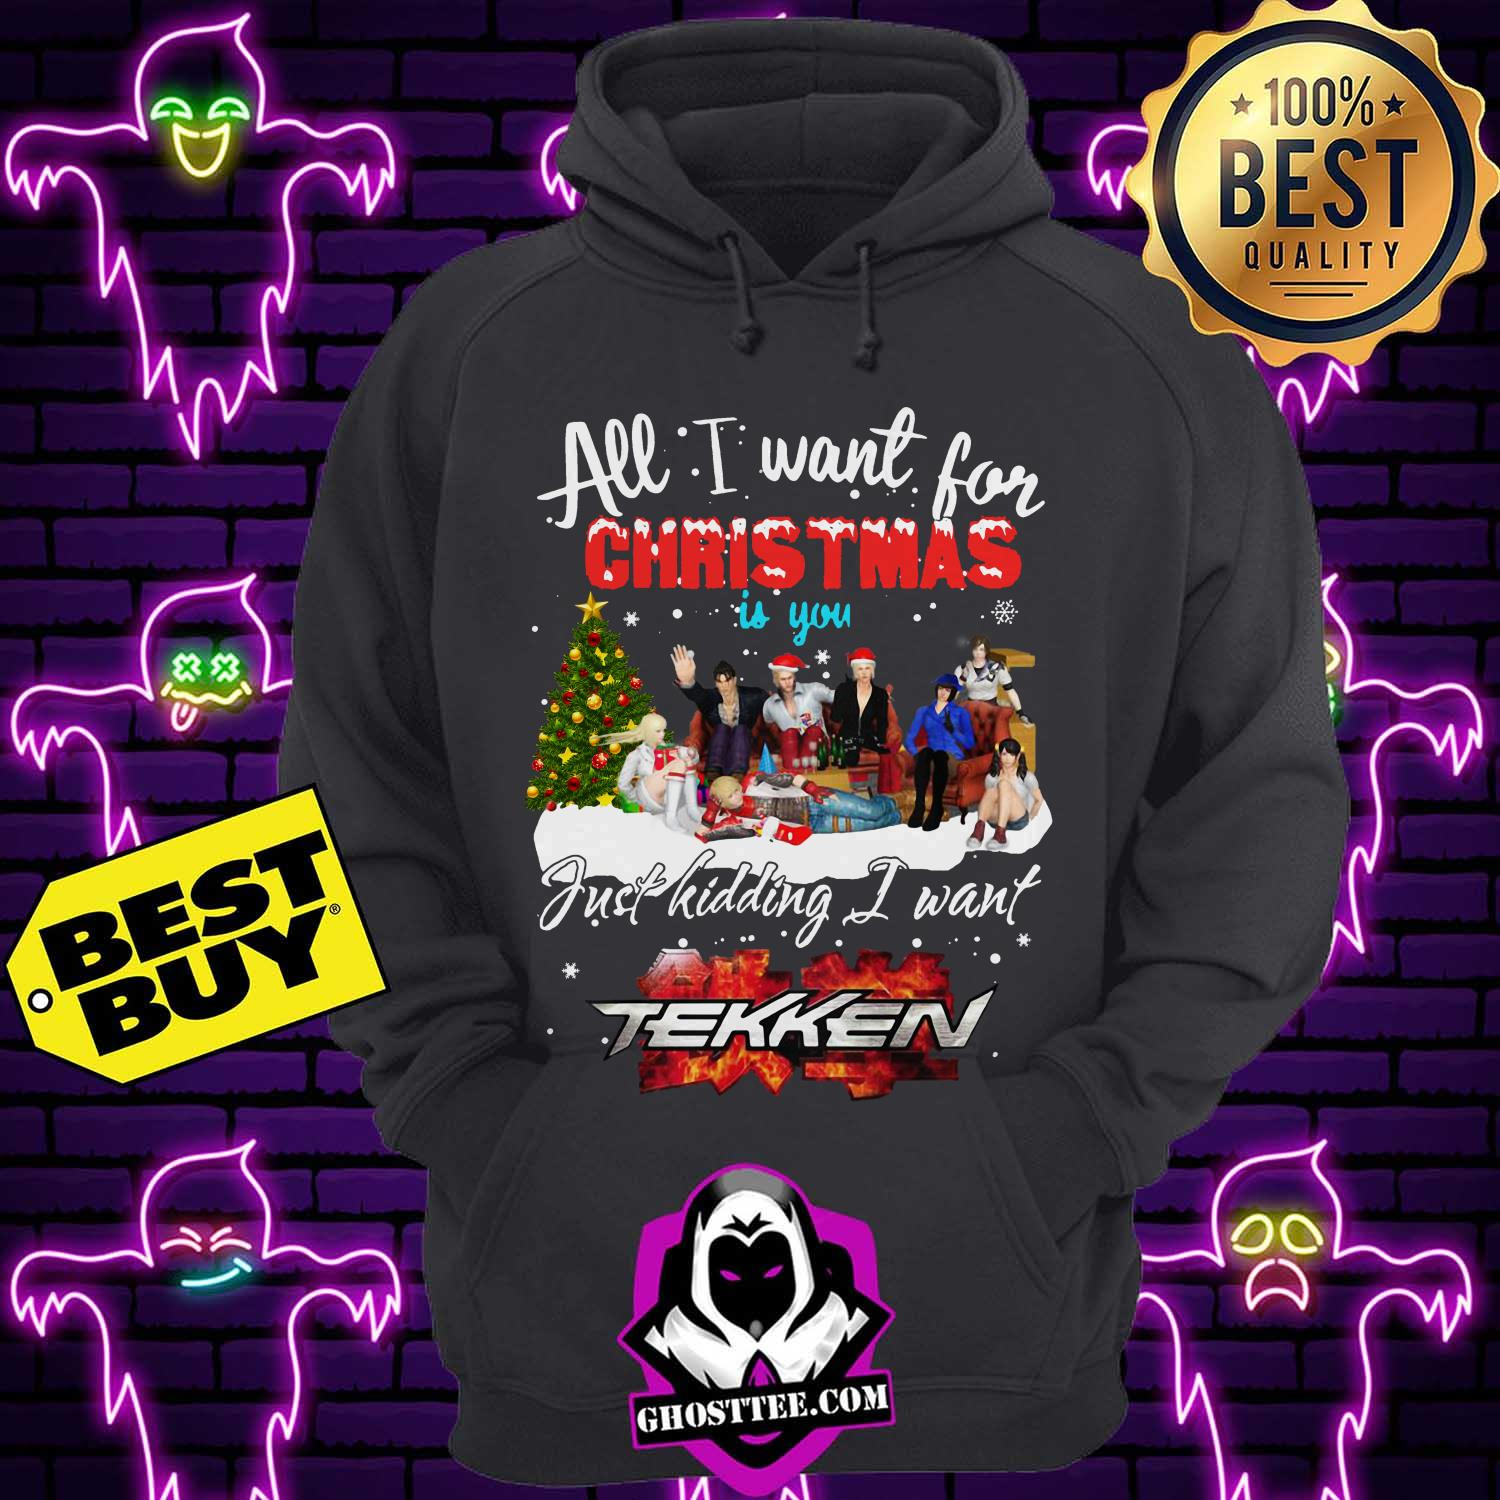 all i want for christmas is you just kidding i want tekken hoodie - All I want for Christmas is you just kidding I want Tekken shirt